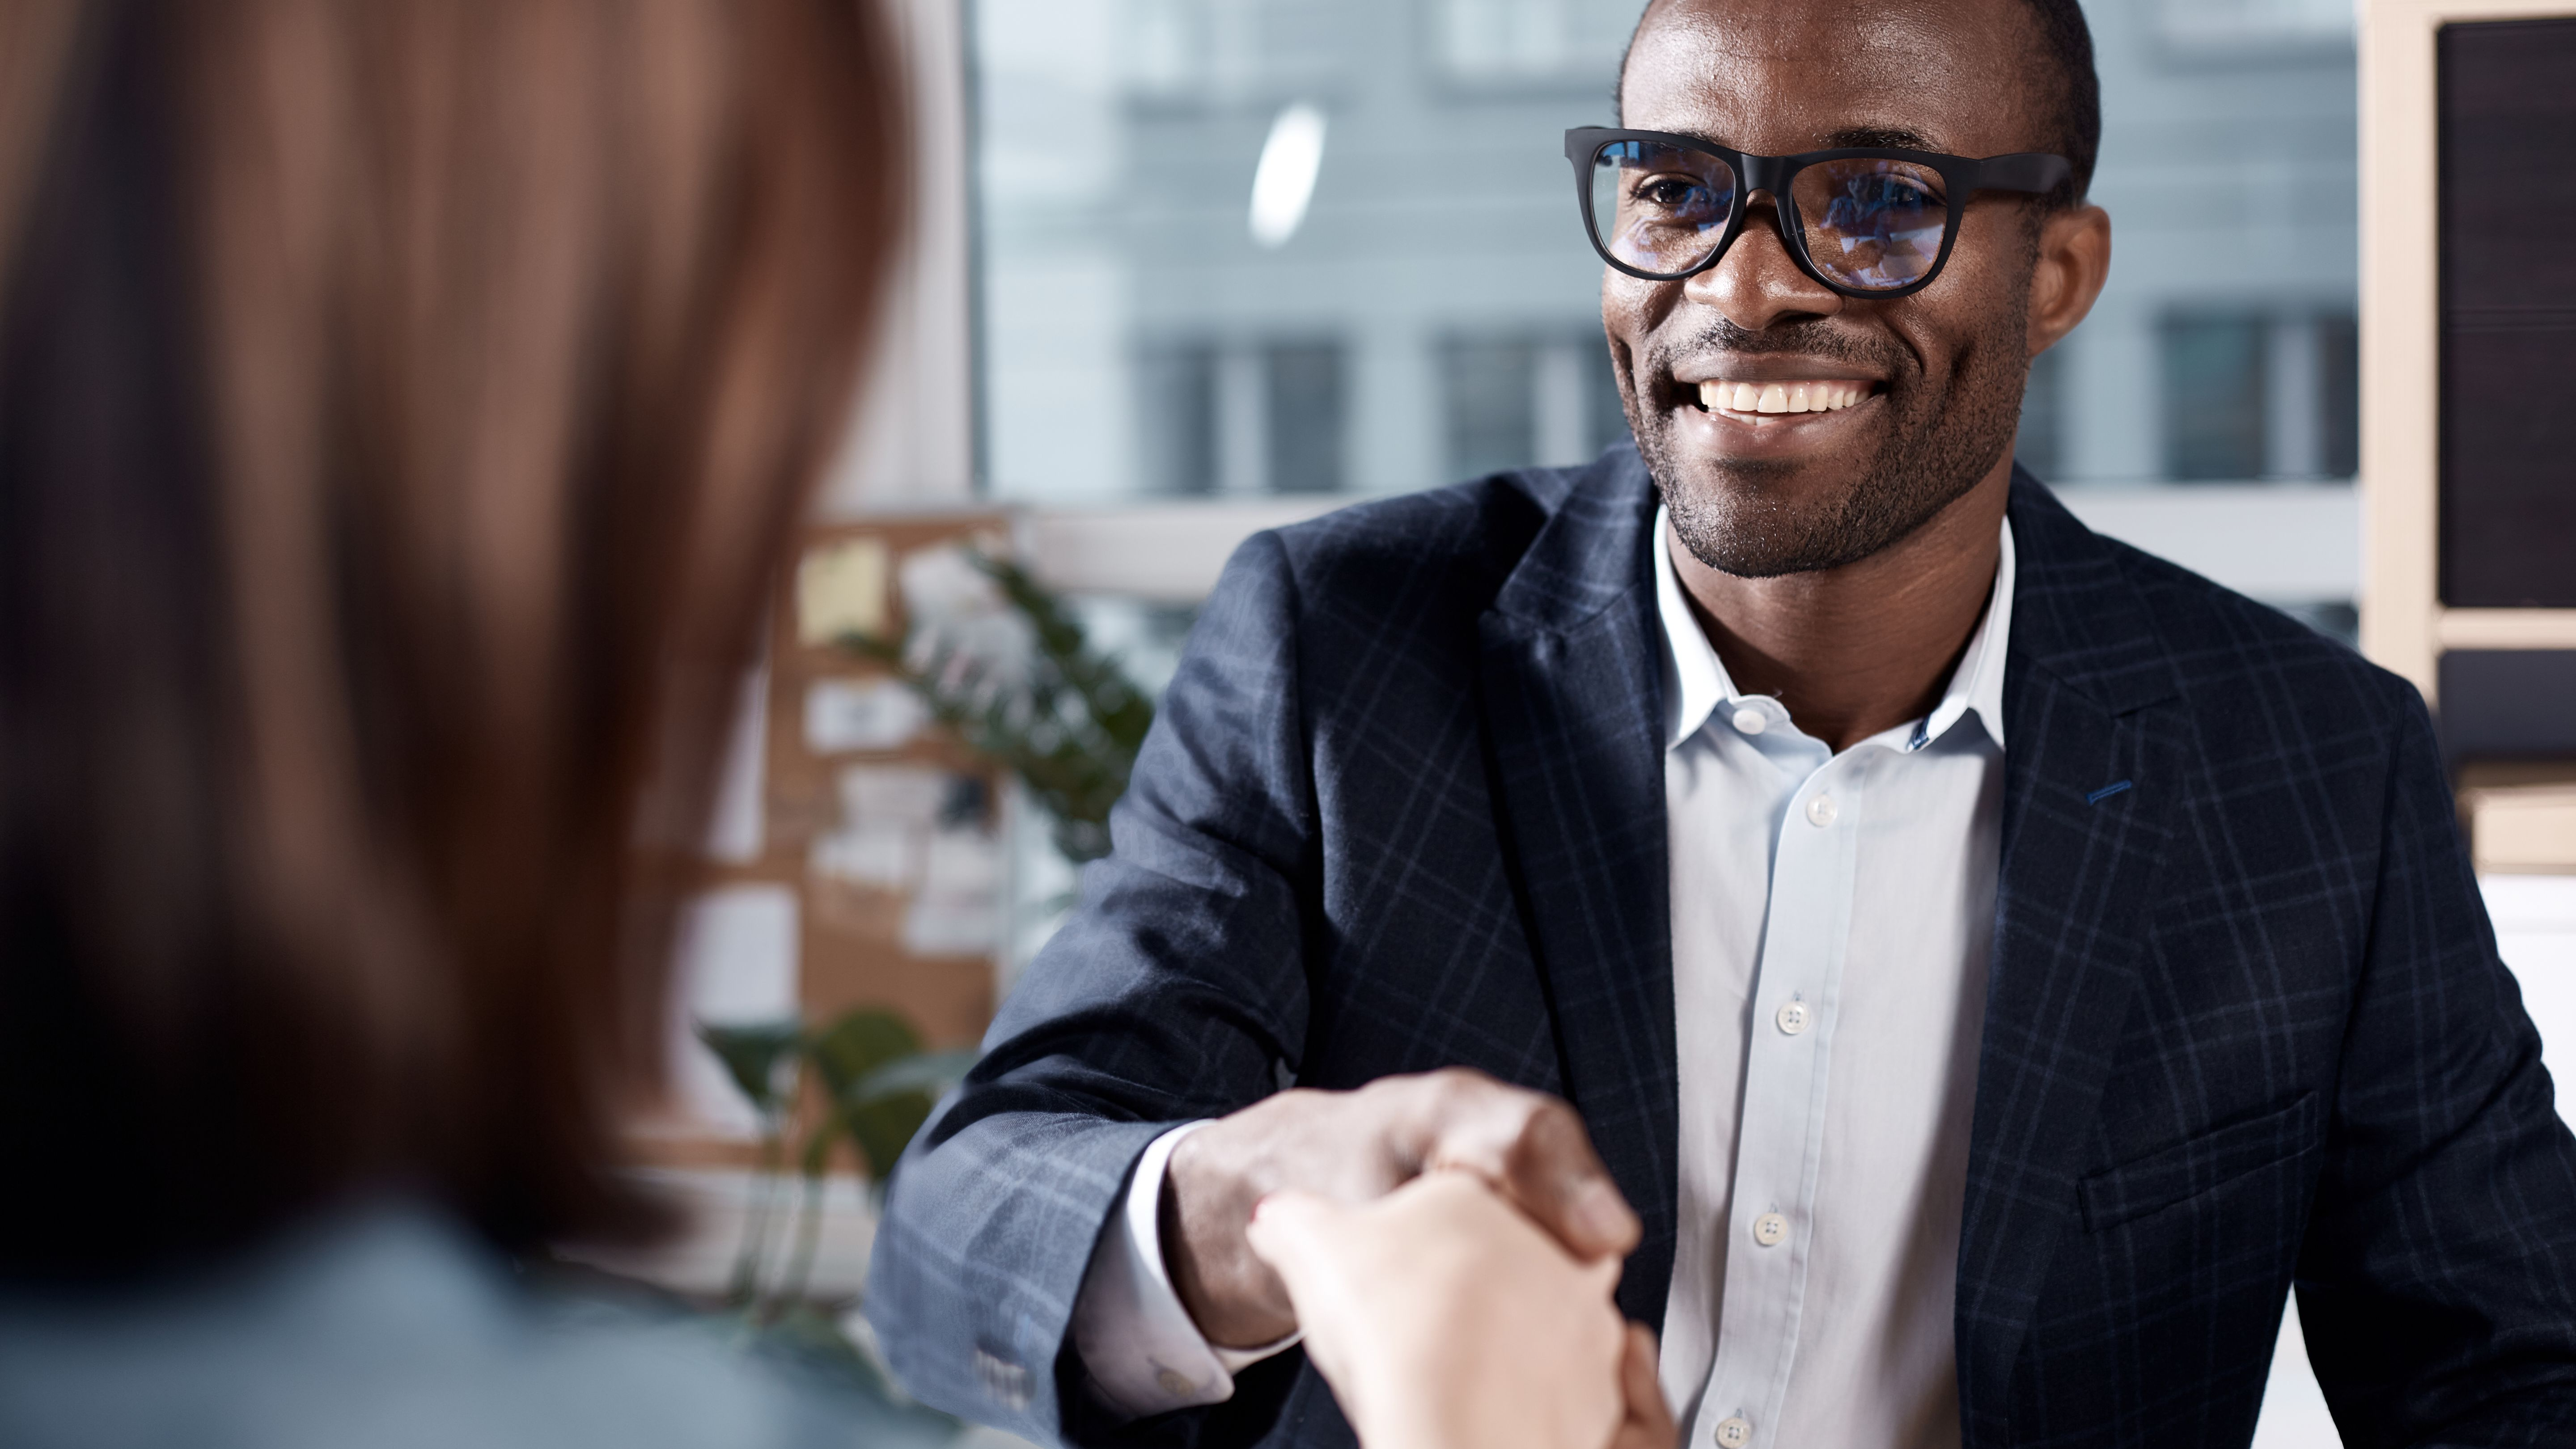 How to Find a Job Recruiter